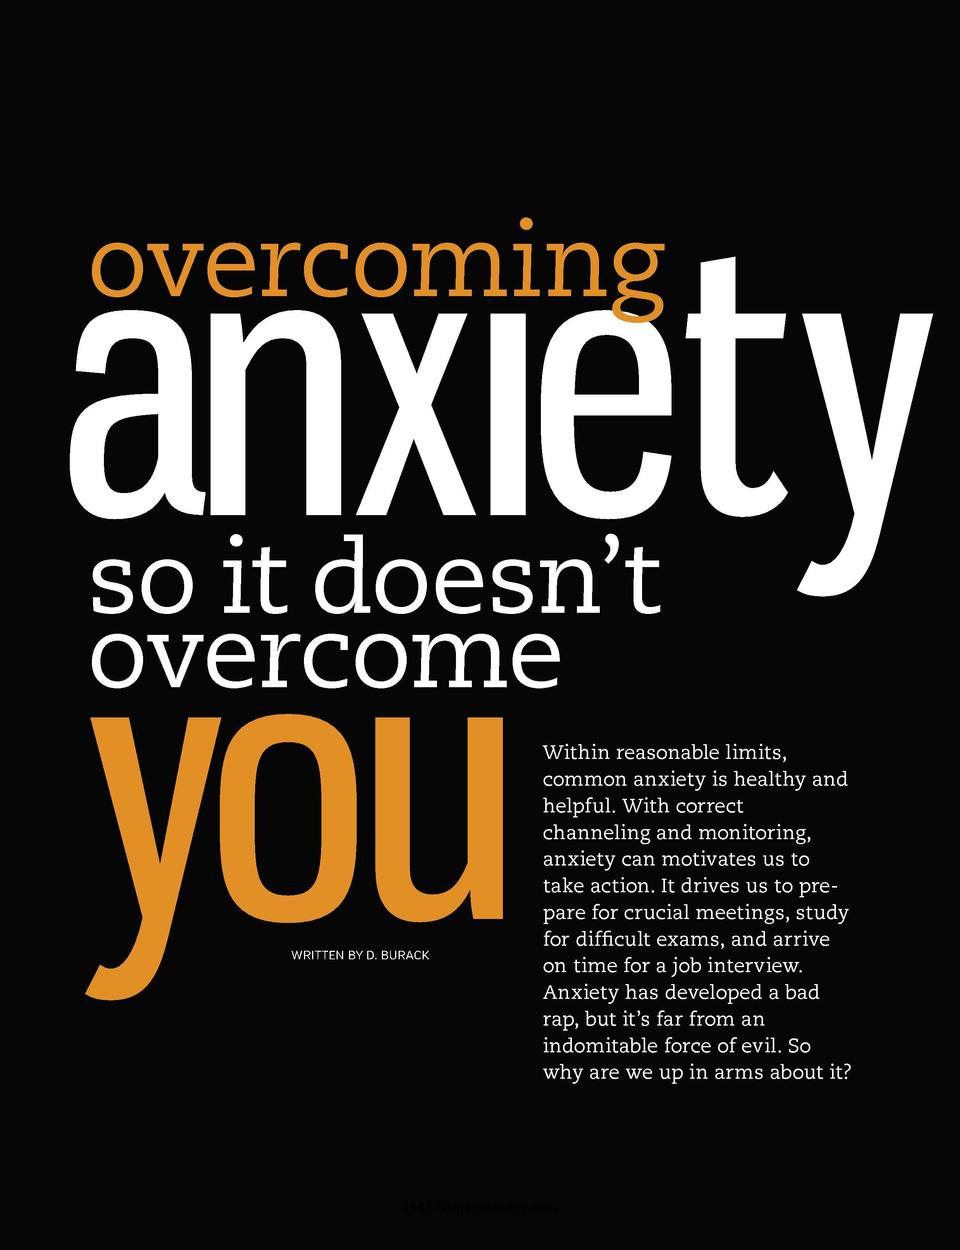 anx  ety you overcoming so it doesn   t overcome WRITTEN BY D. BURACK  Within reasonable limits, common anxiety is healthy...